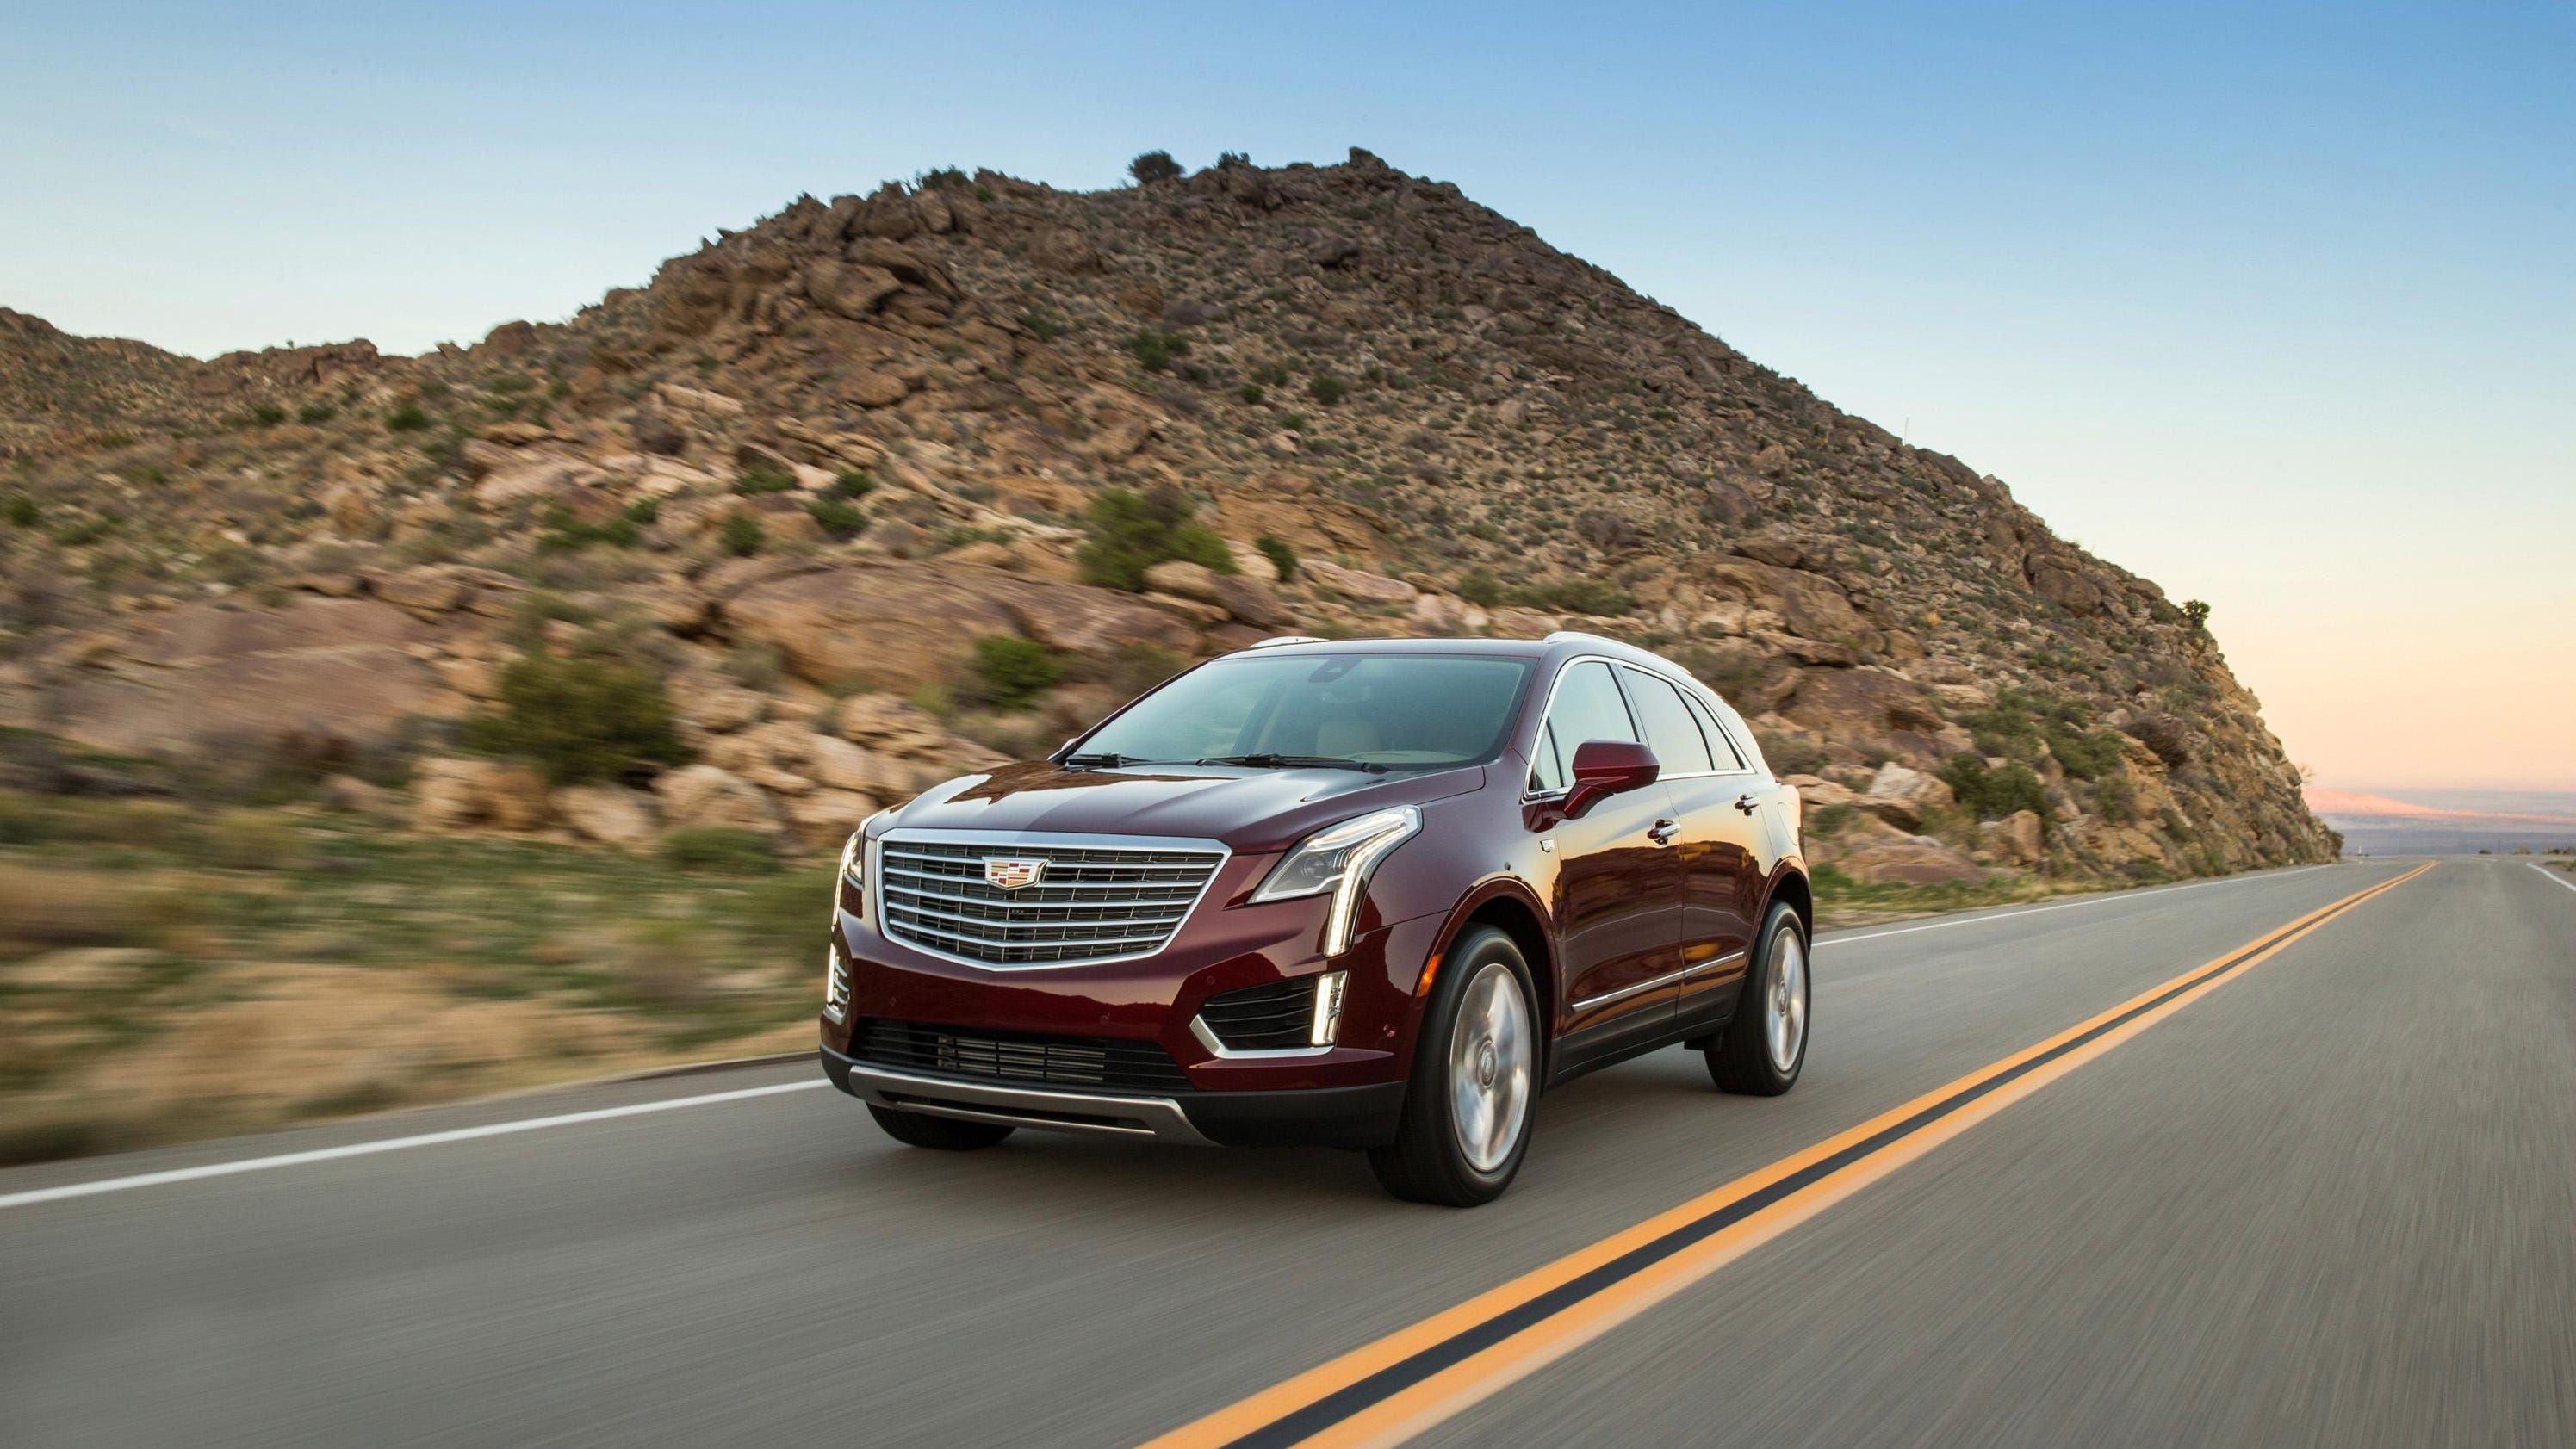 cadillac release review overview picture and price srx date autocar